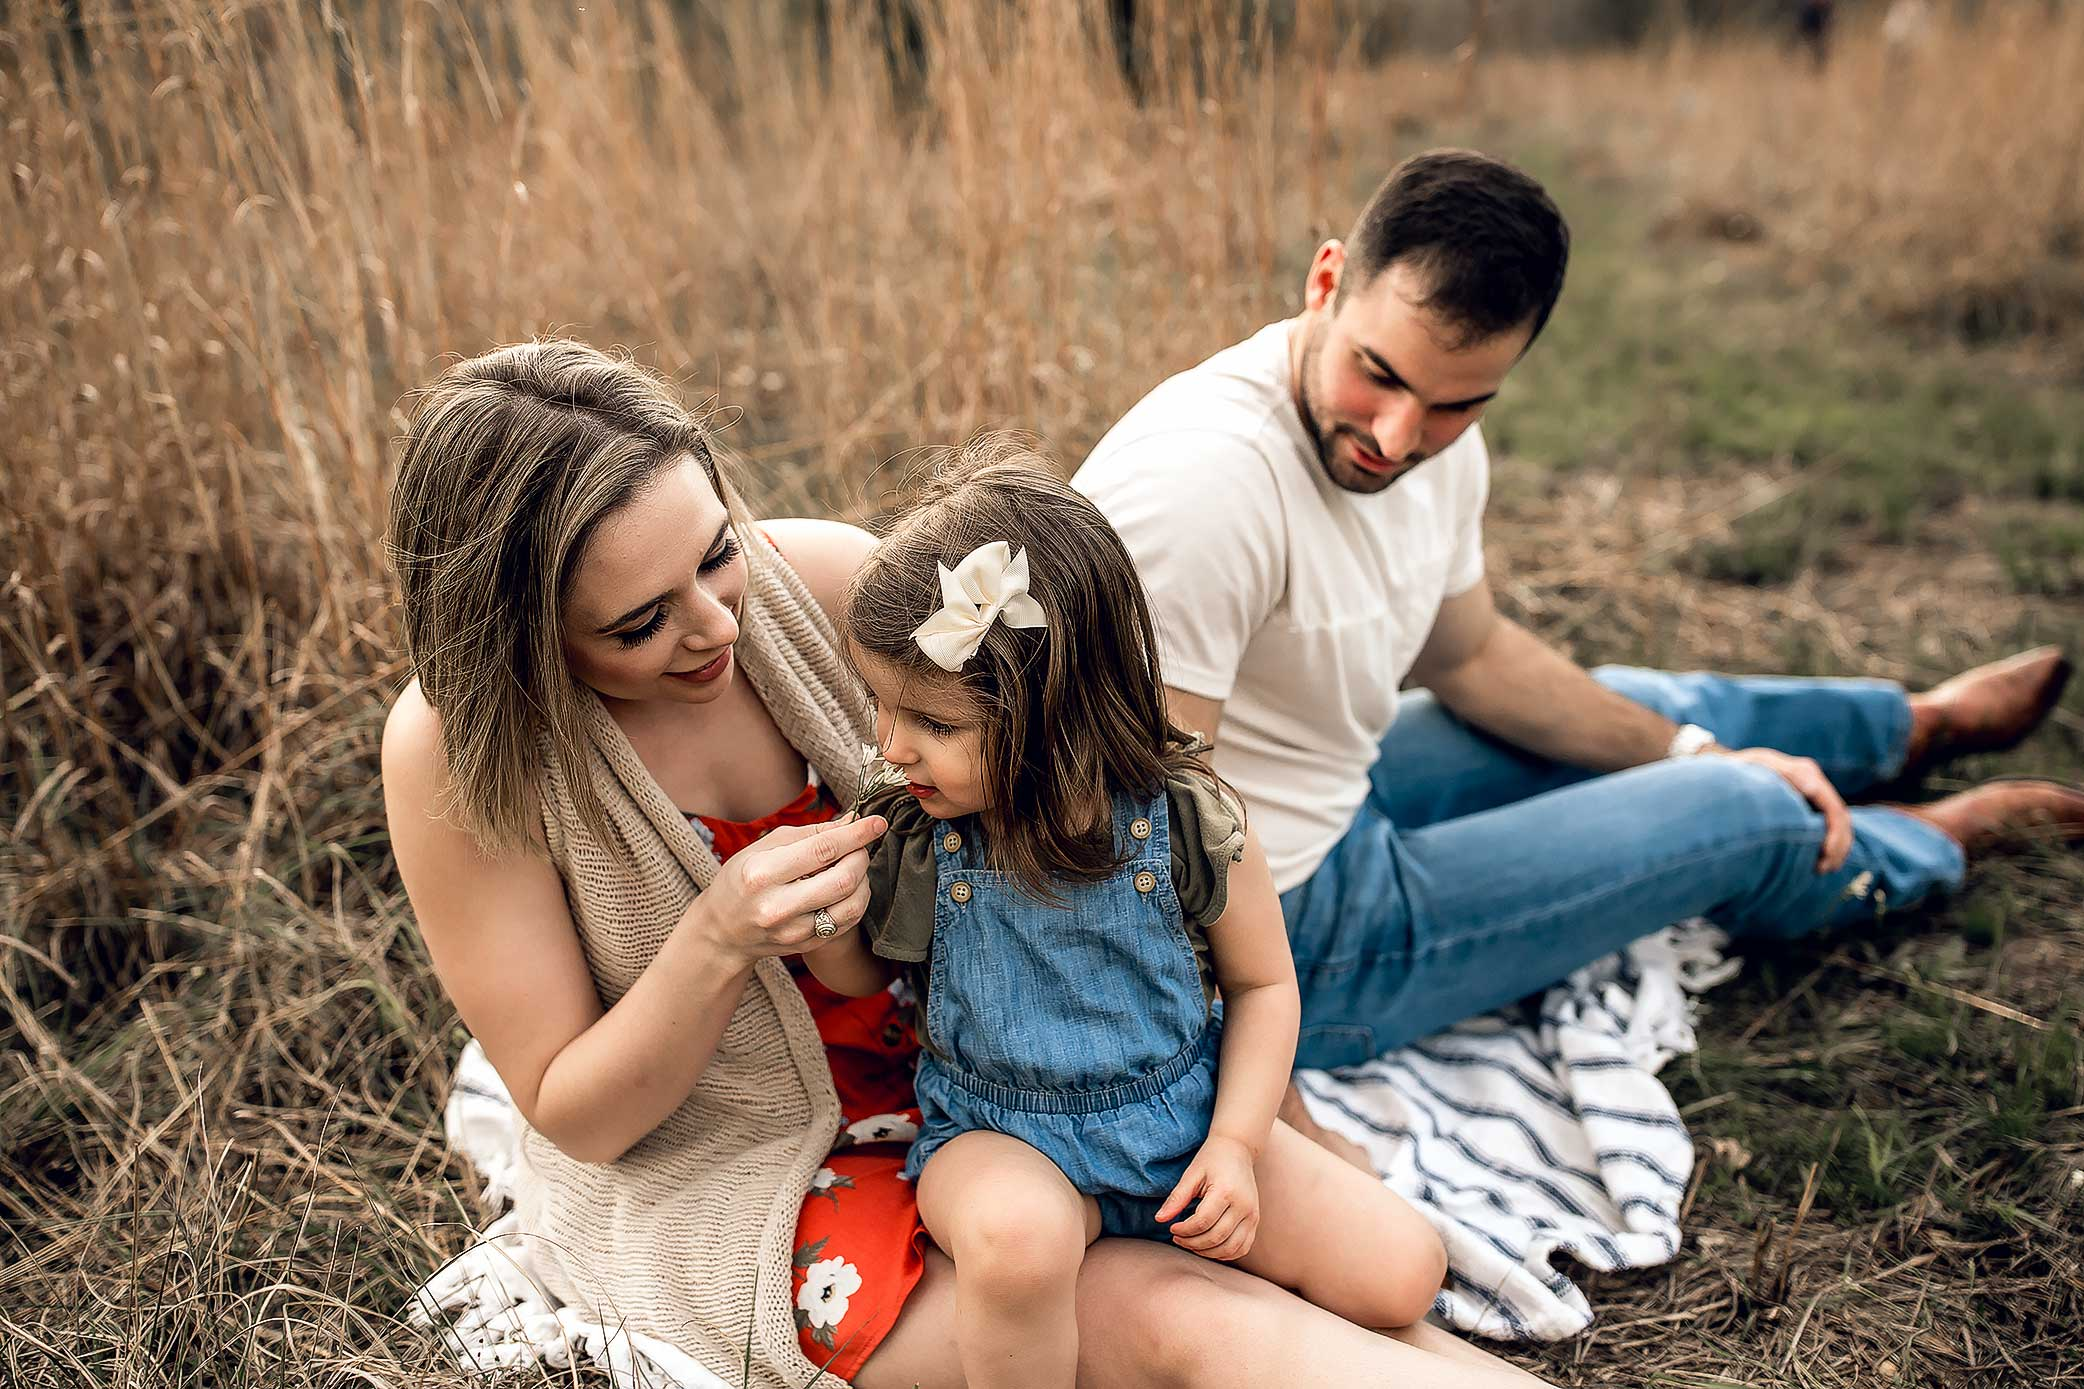 shelby-schiller-photography-sunset-family-pictures-spring-2019-12.jpg